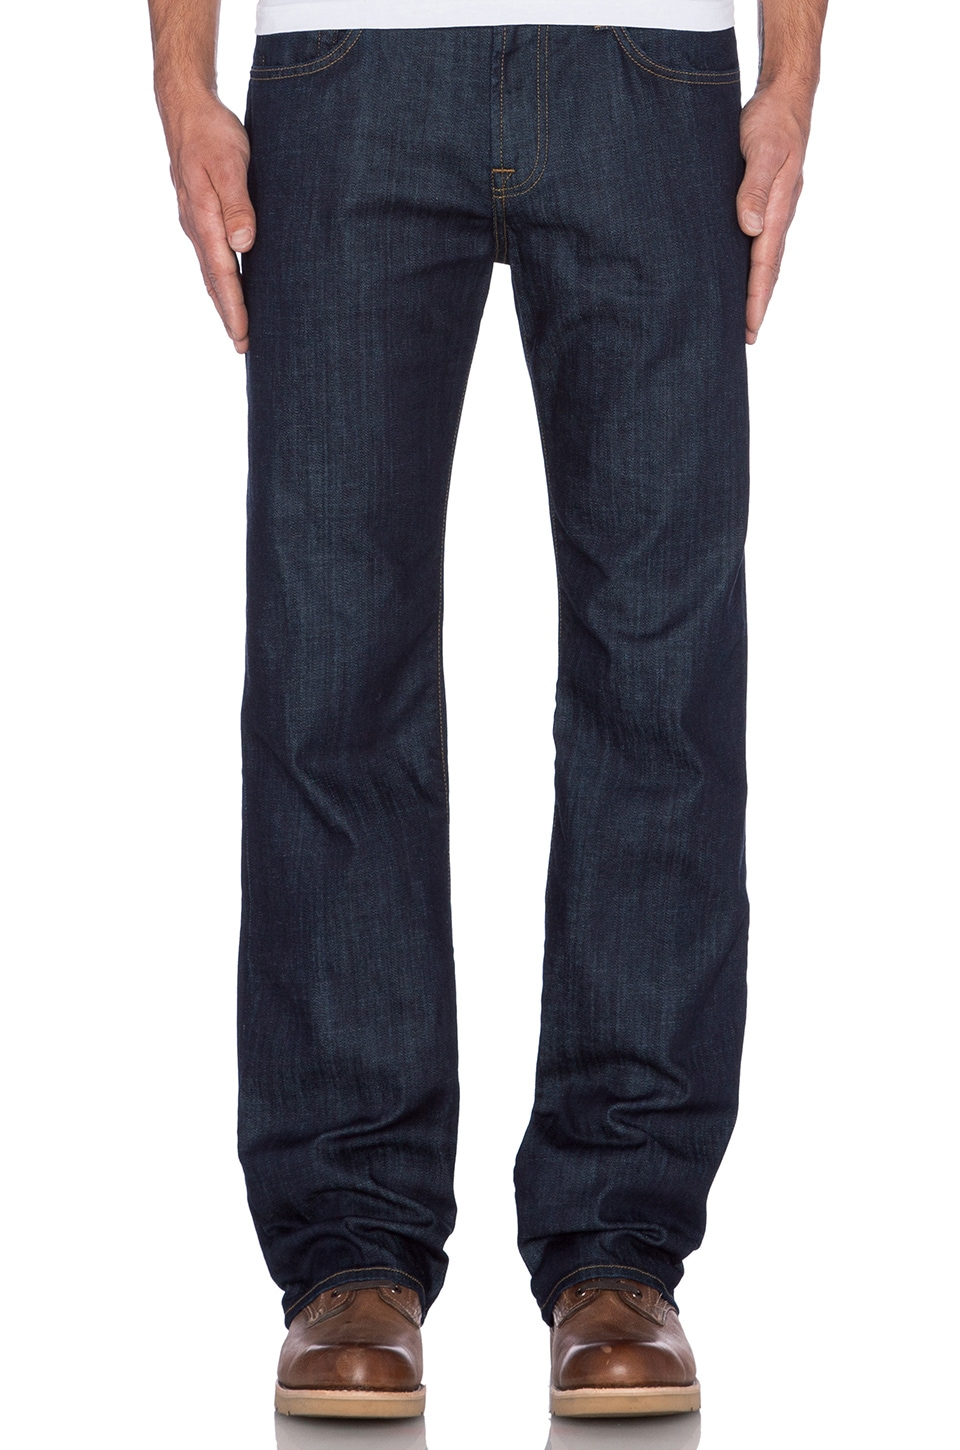 7 For All Mankind Austyn in Dark and Clean